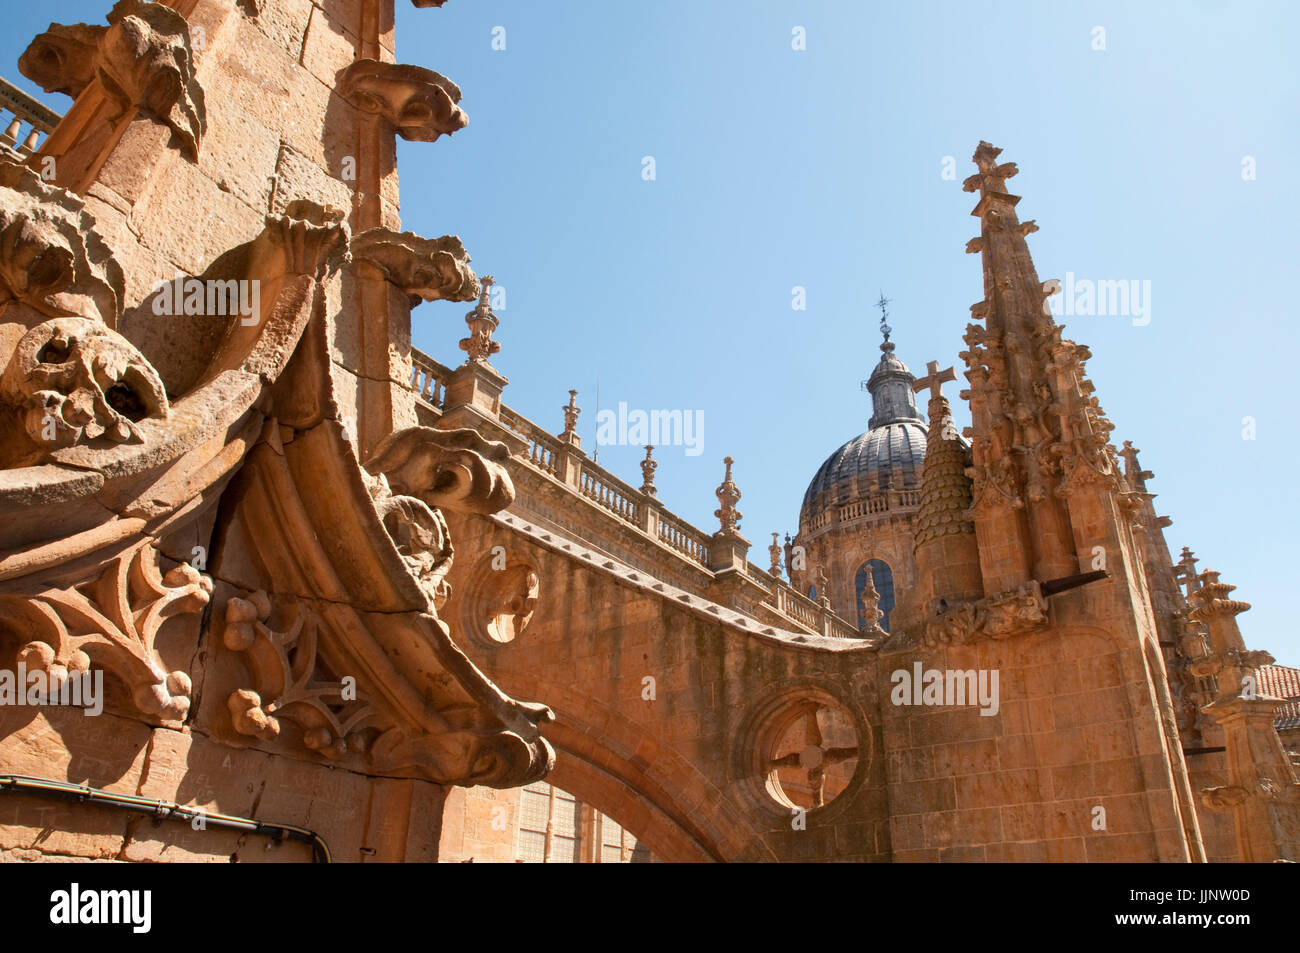 View from the terrace of the New Cathedral. Salamanca, Castile Leon, Spain. - Stock Image